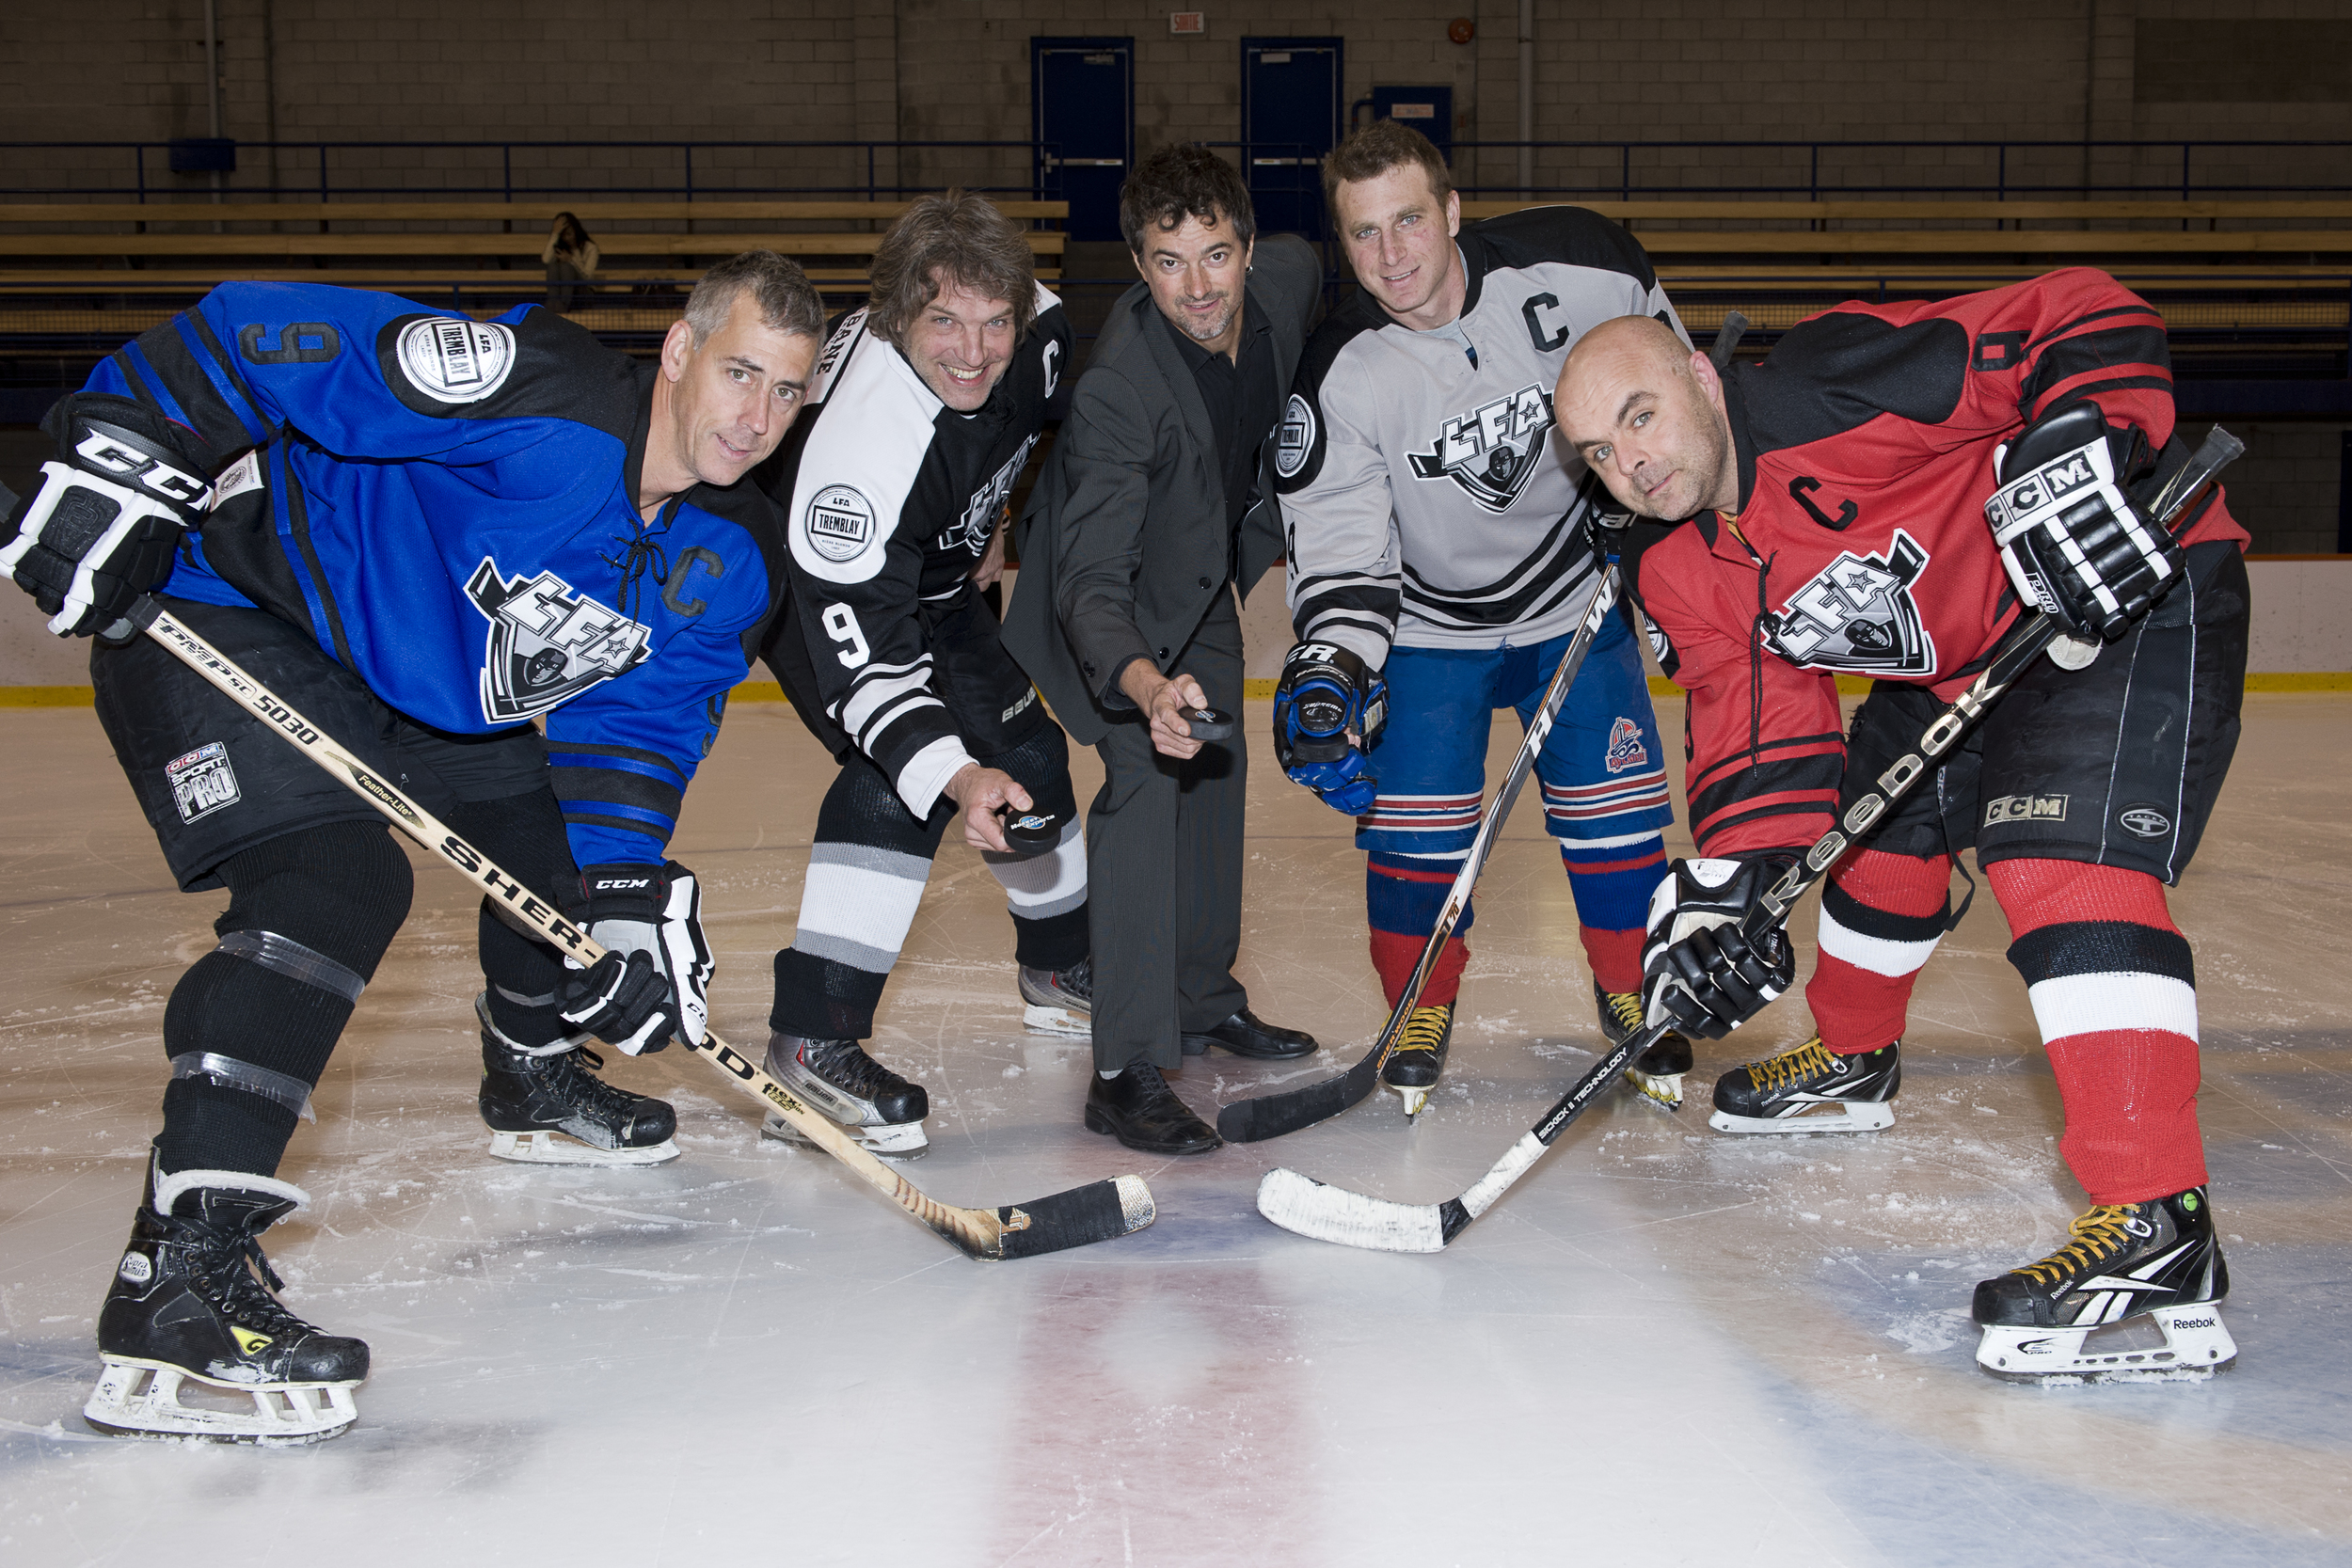 PUCK DROP BEFORE THE FIRST LFA GAME (FROM LEFT TO RIGHT) PATRICK BALDWIN,LArry,Jean-Francois DESBOIS,PHILLIPPE-MICHEL LANG & ERIC DRAPEAU